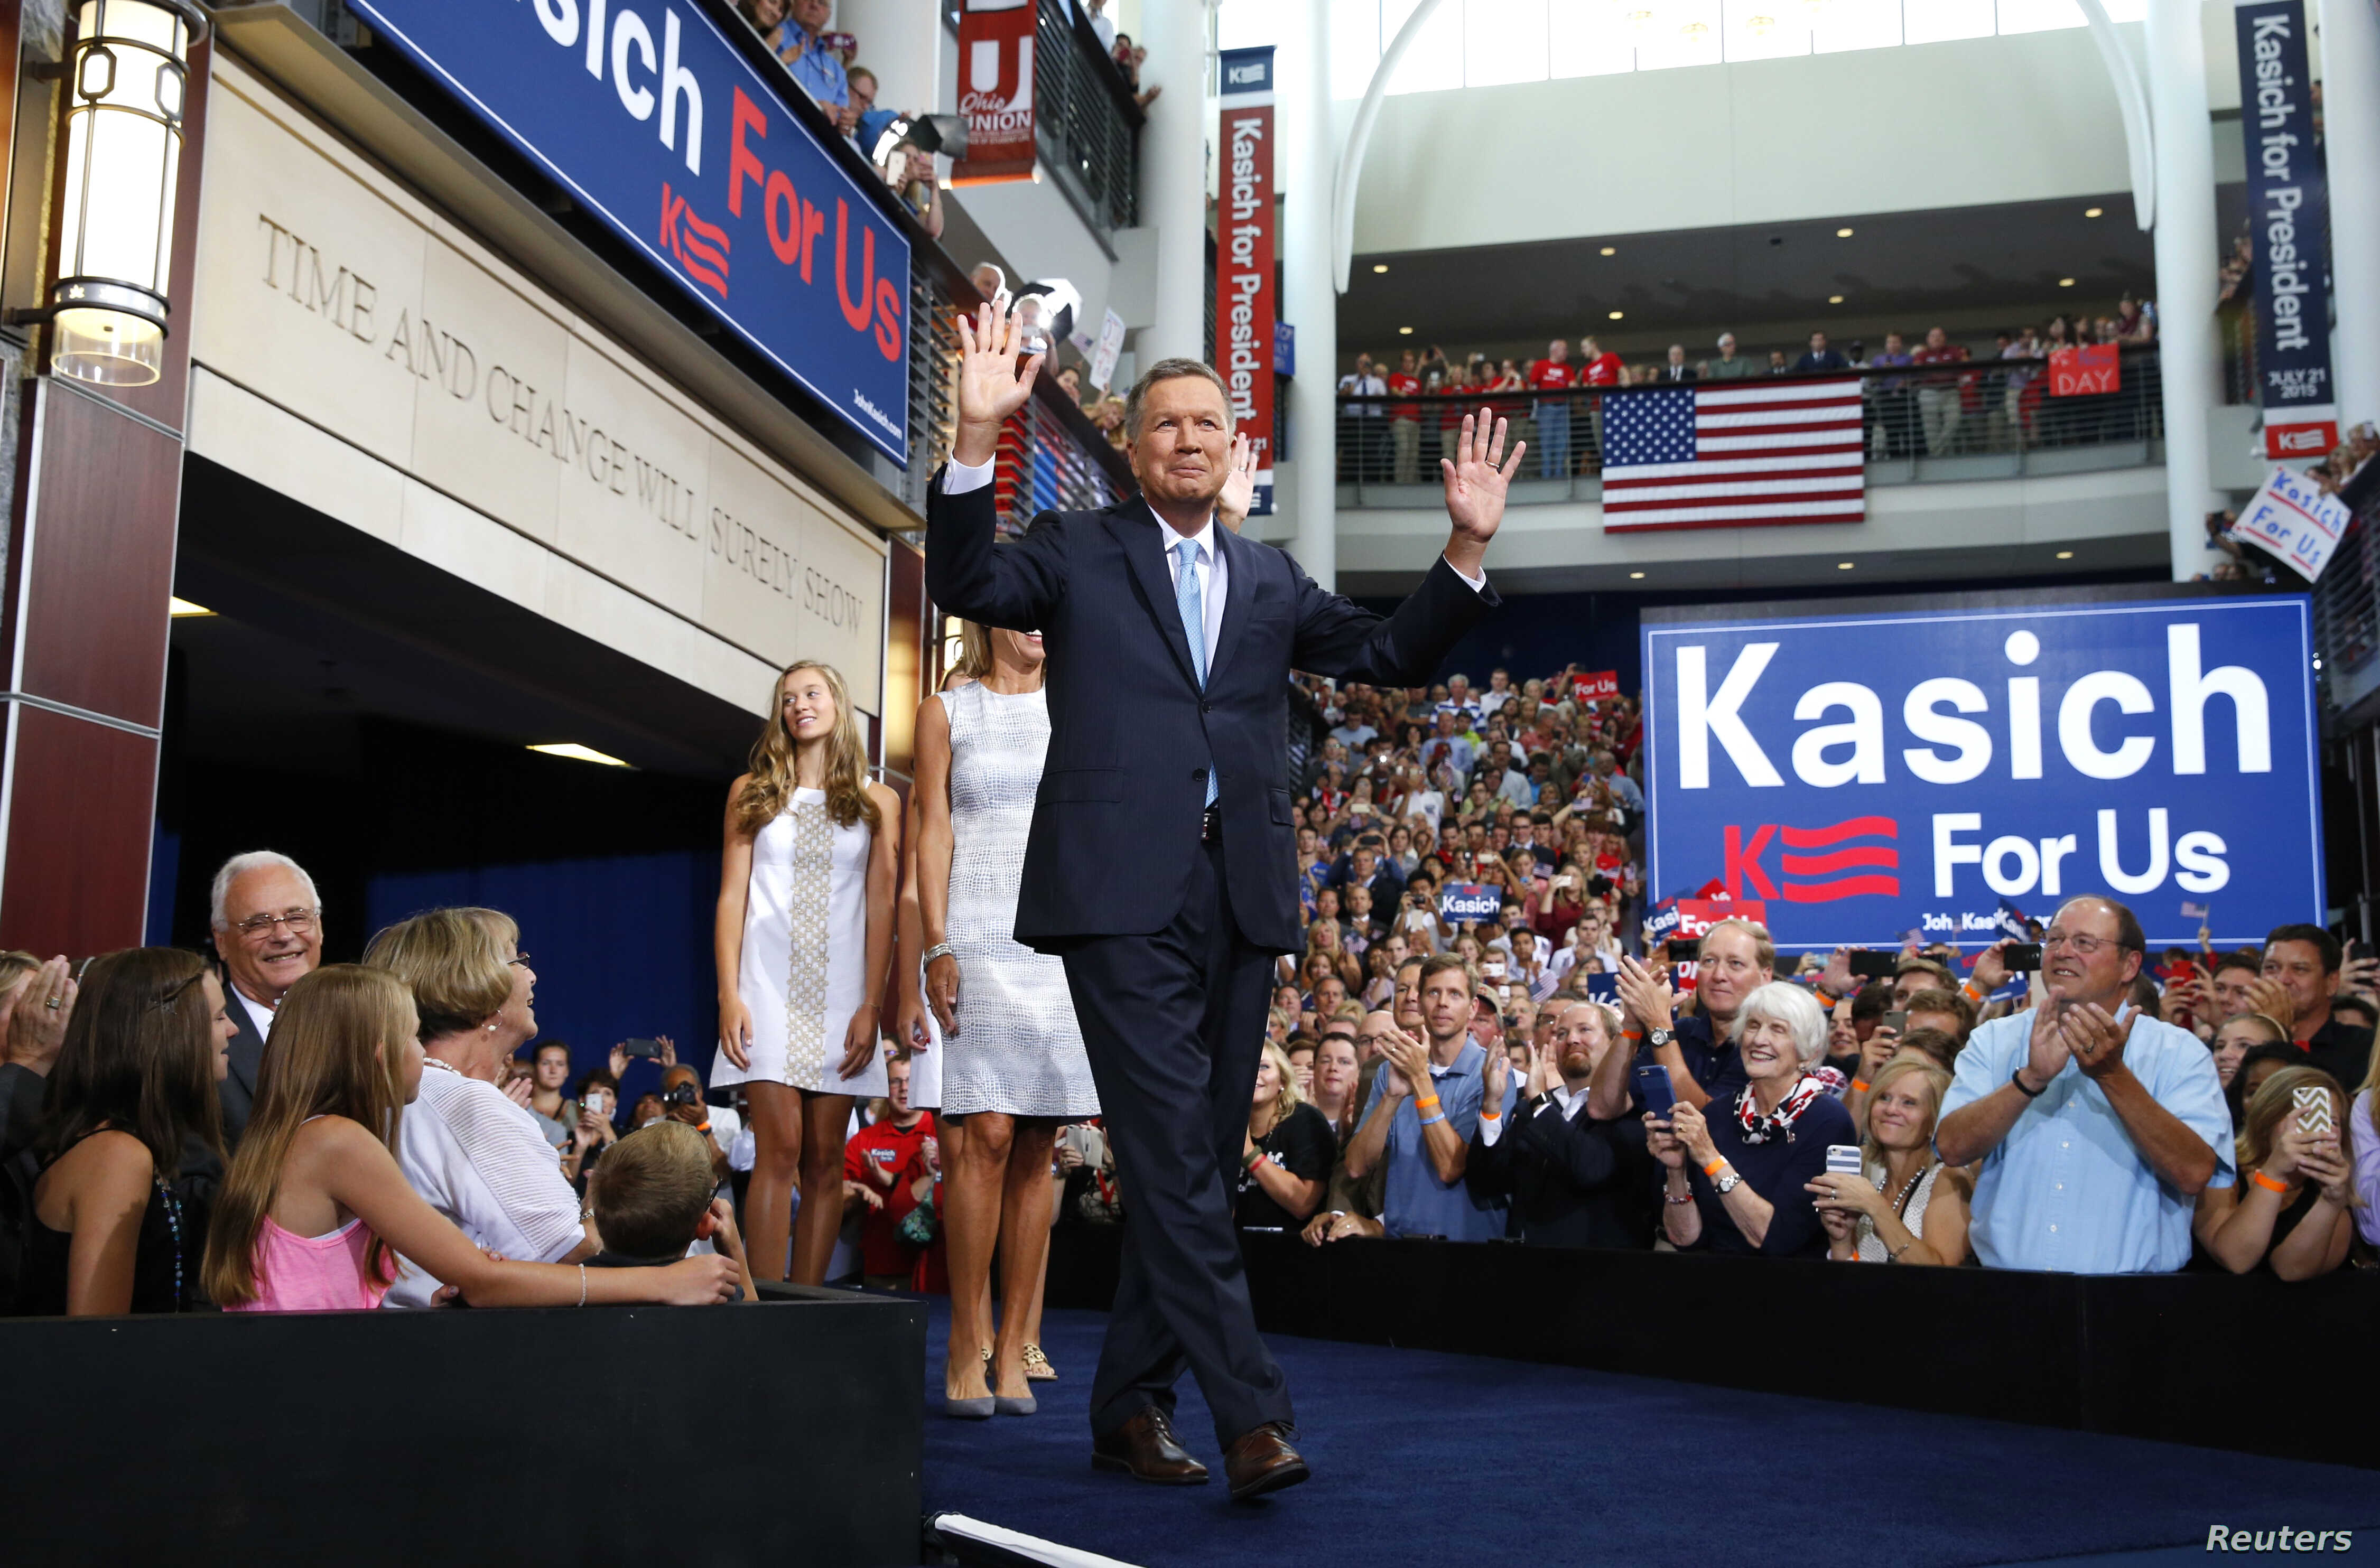 Republican U.S. presidential candidate and Ohio Governor John Kasich arrives on stage to formally announce his campaign for the 2016 Republican presidential nomination during a kickoff rally in Columbus, Ohio, July 21, 2015.